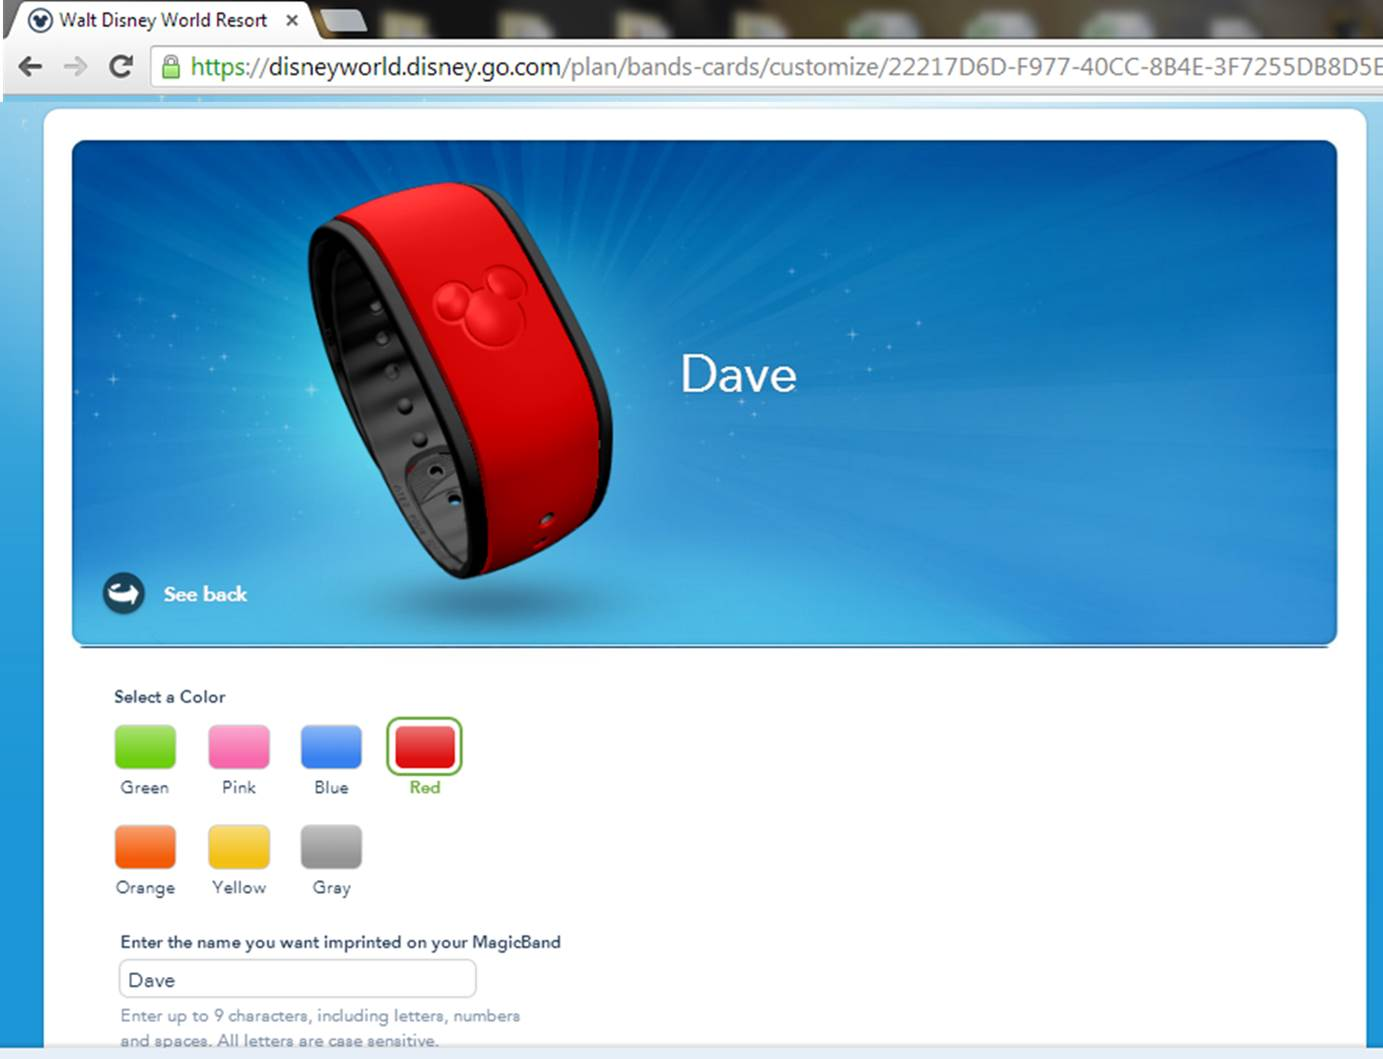 Customizing MagicBands